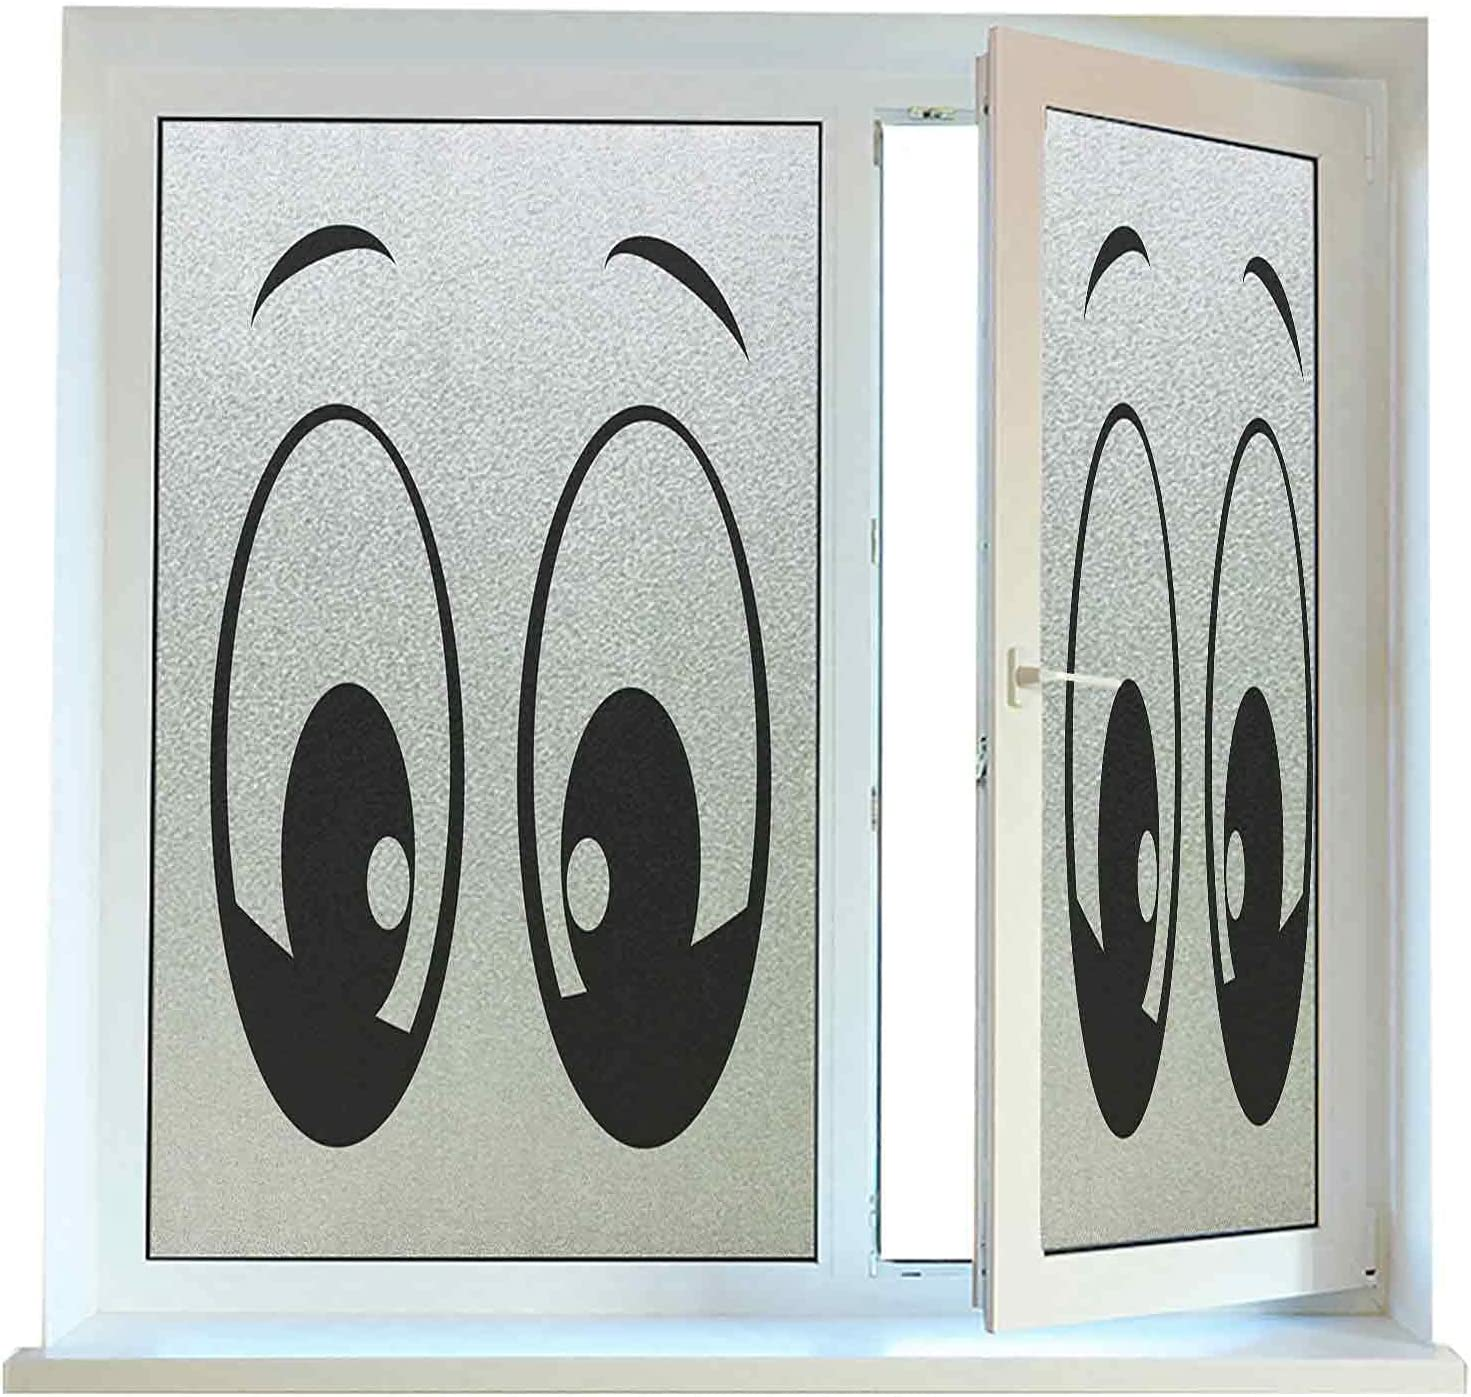 Window Max Discount mail order 75% OFF Film Privacy Decorative Eye 24